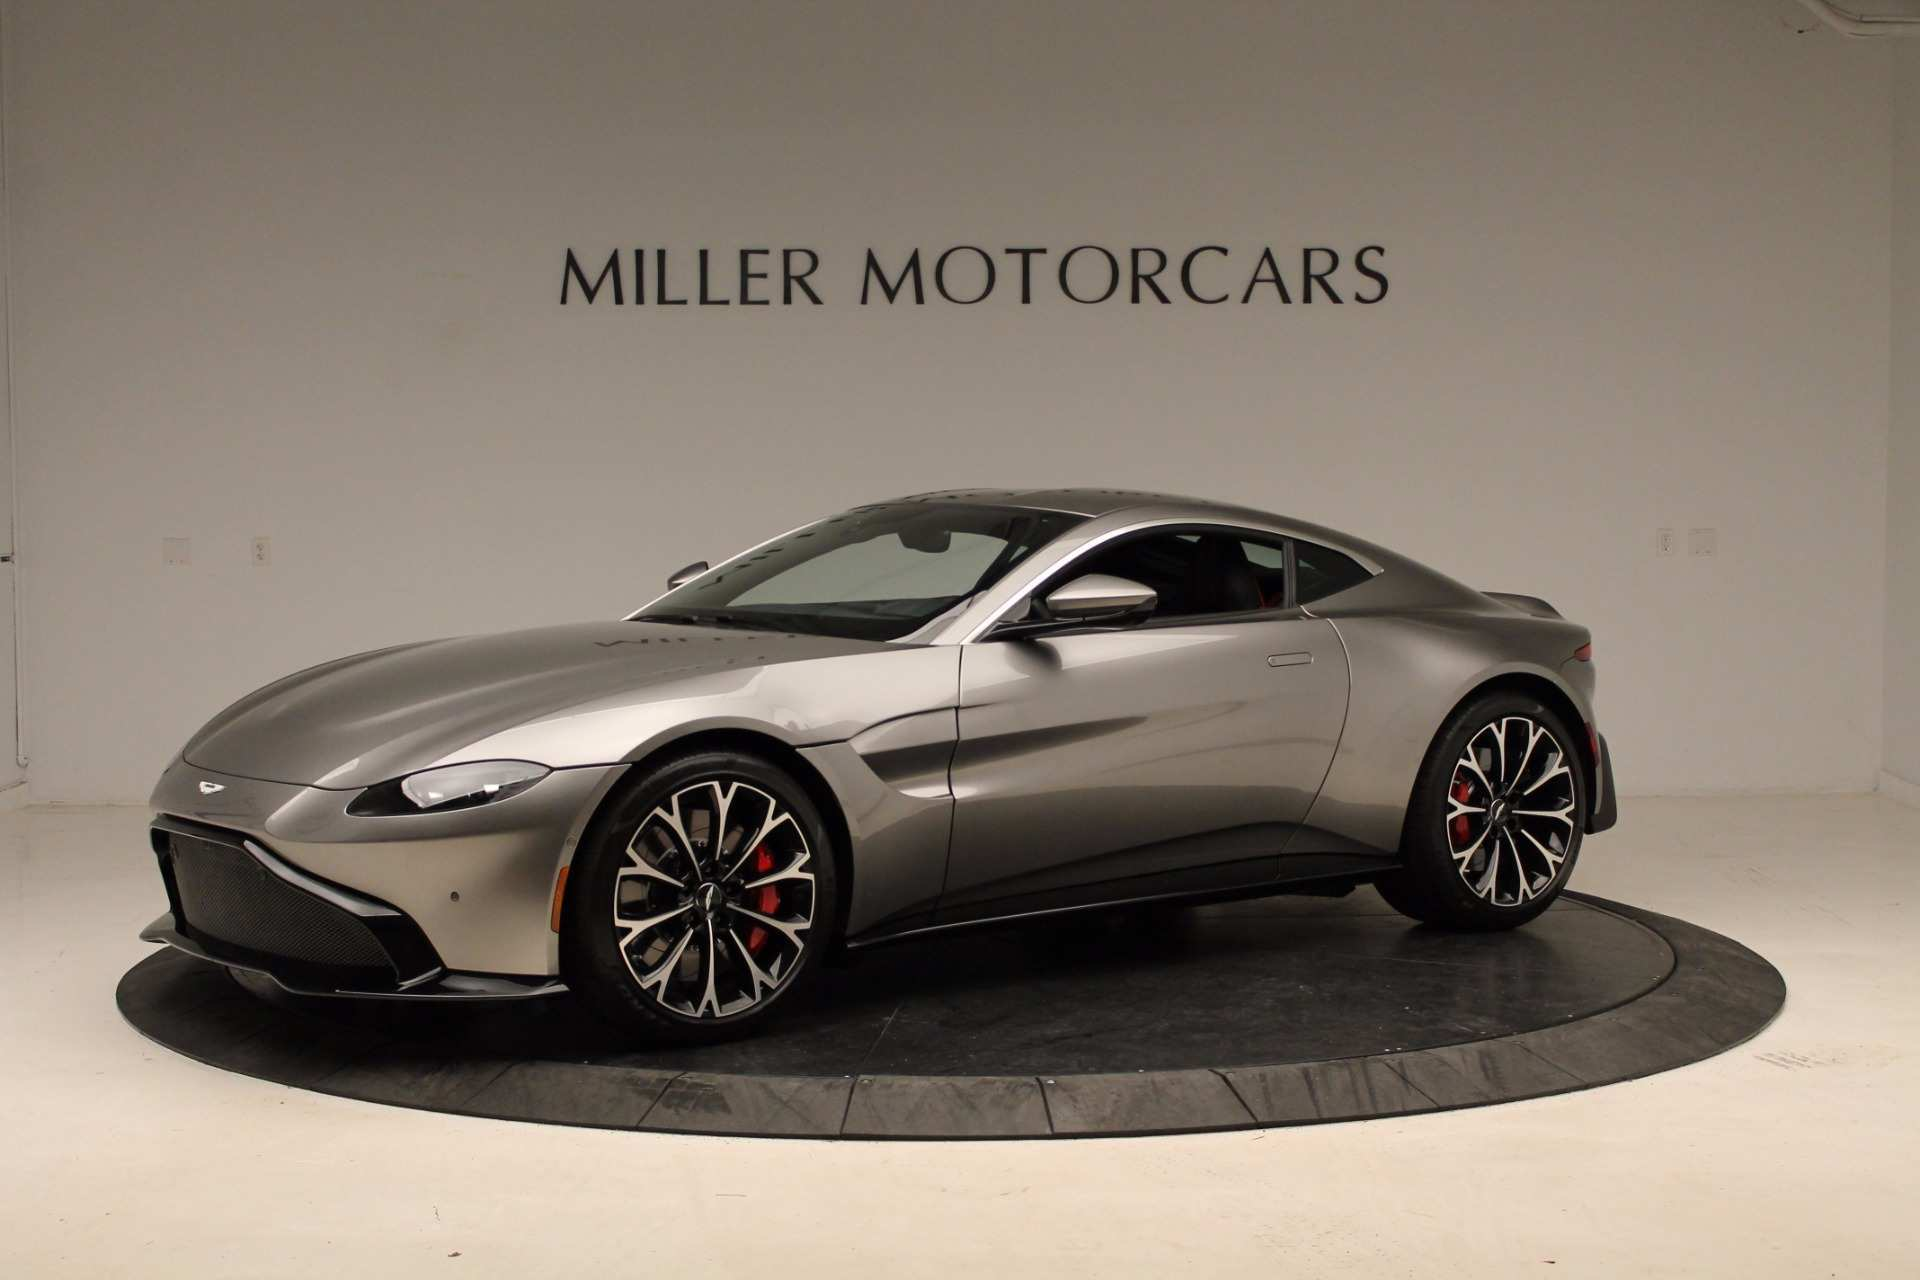 74 Concept of 2019 Aston Martin Vantage For Sale Release Date for 2019 Aston Martin Vantage For Sale